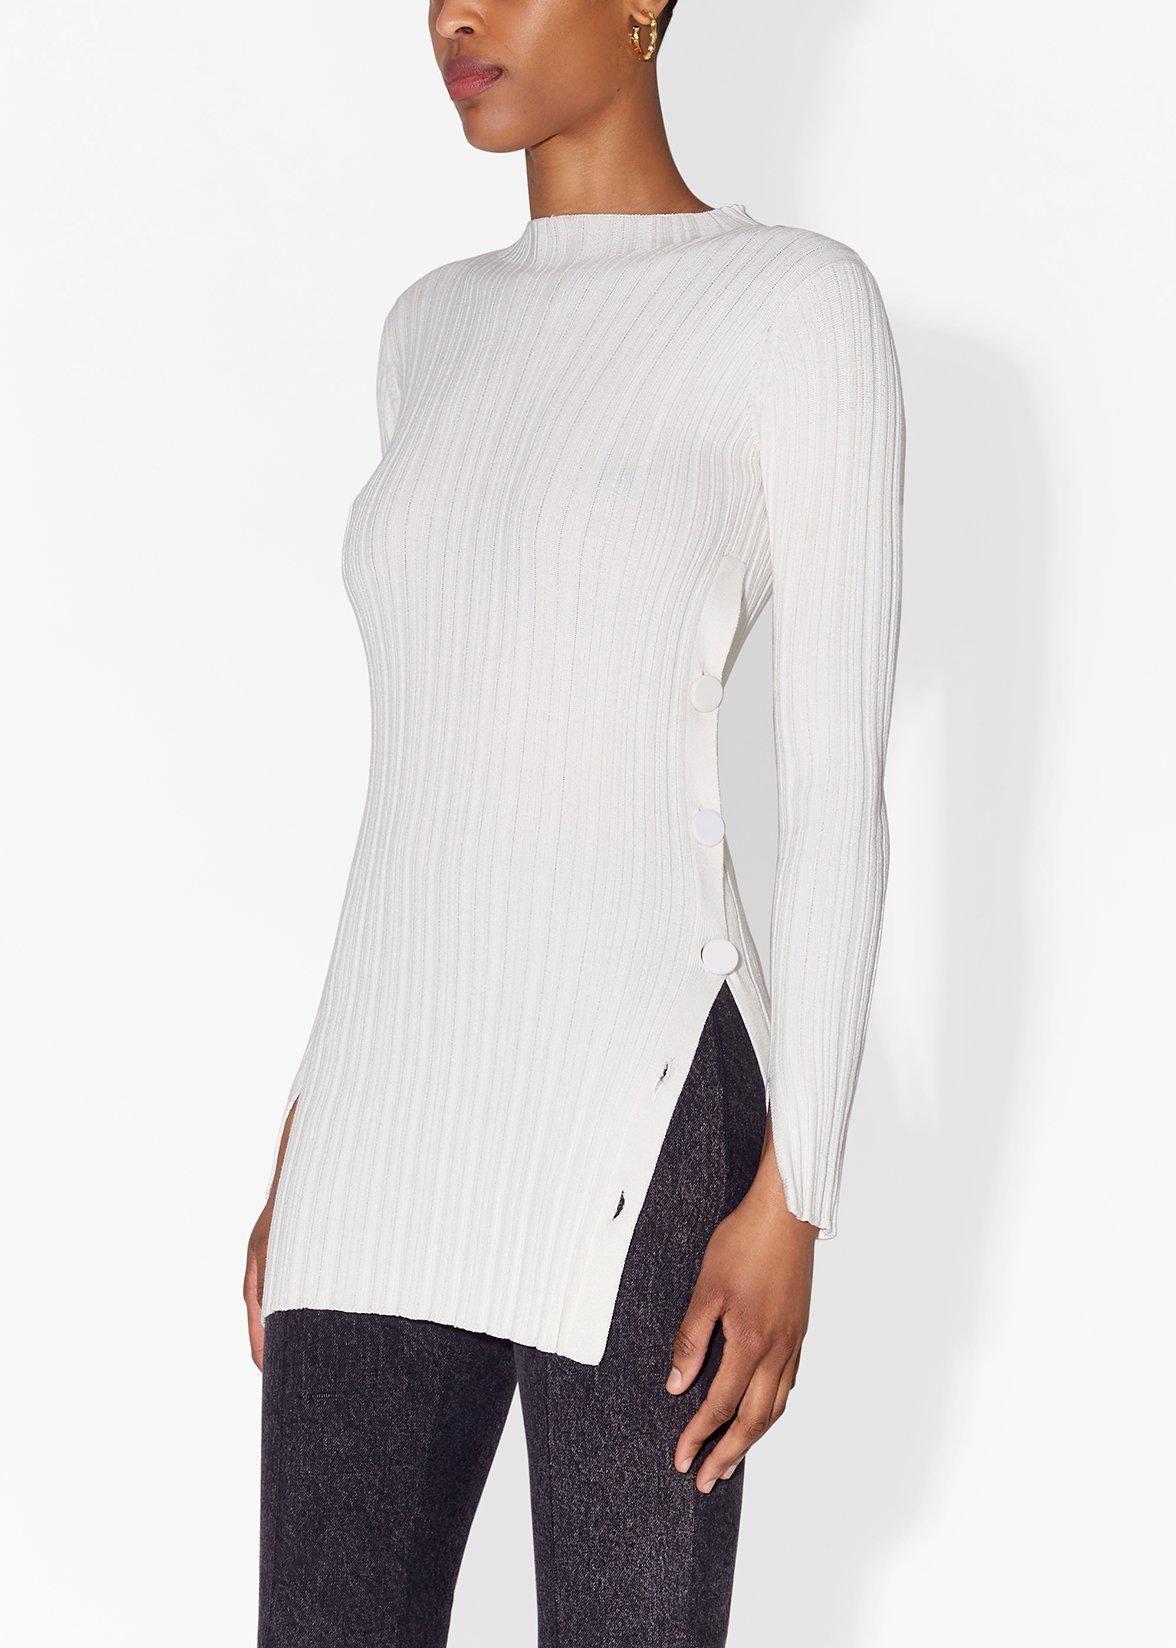 TUNIC WITH SIDE BUTTONS IN COTTON CREPE